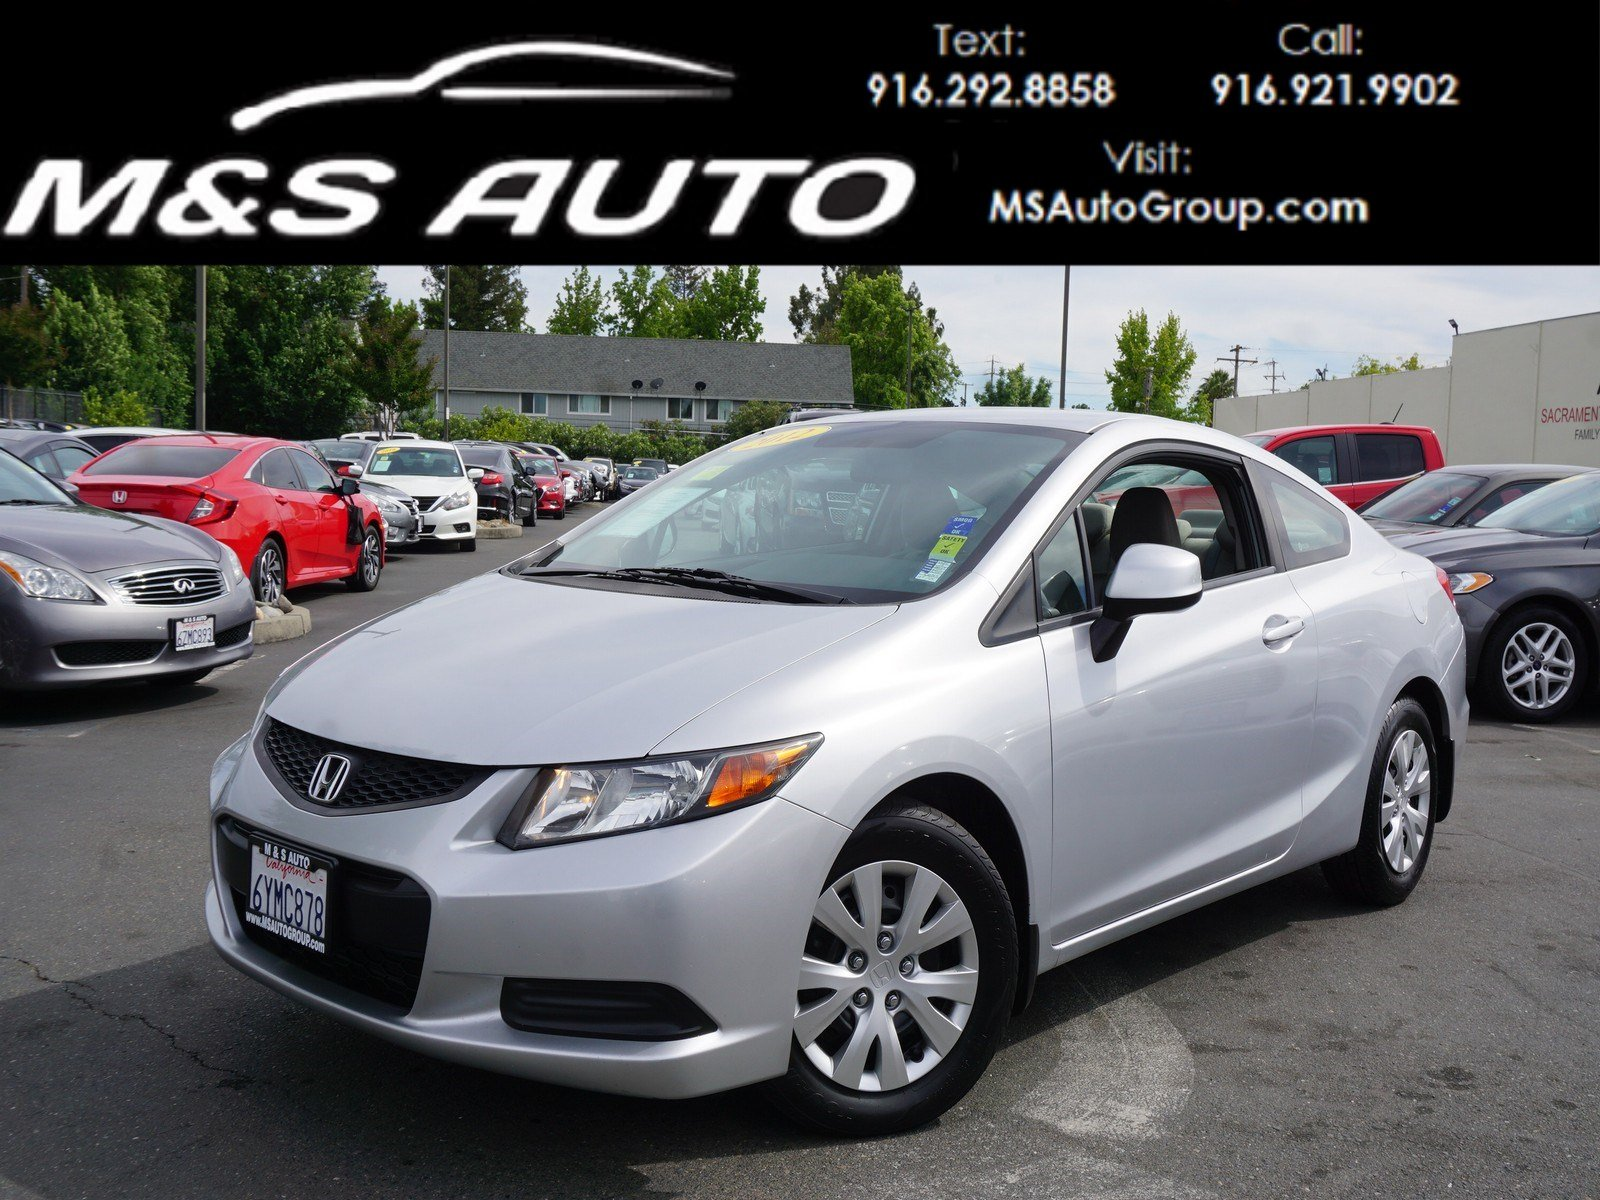 Pre-Owned 2012 Honda Civic Cpe LX